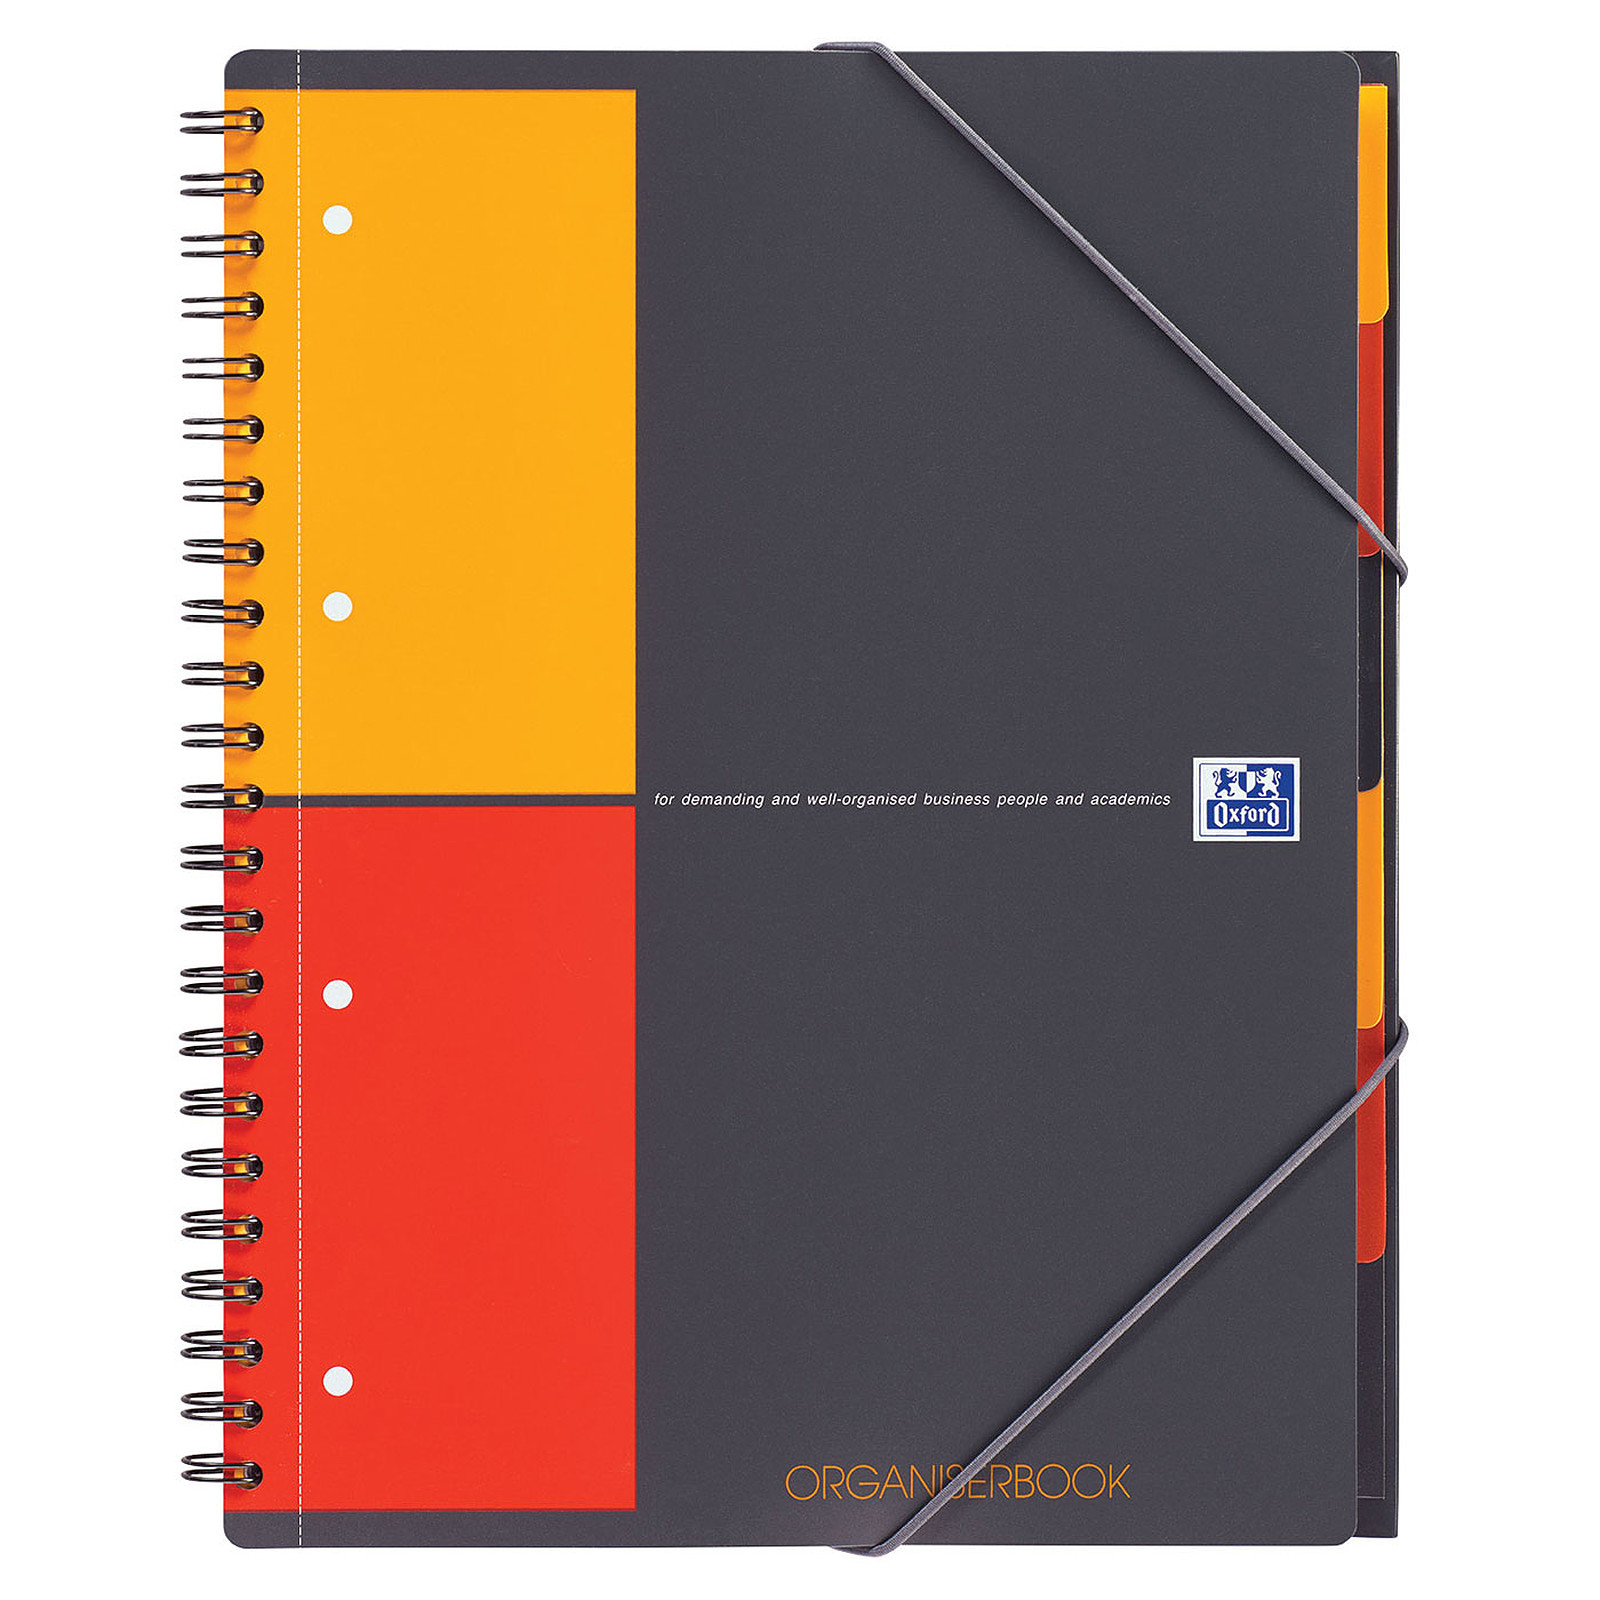 CAHIER OXFORD A4 5*5 ORGANISER BOOK160 PAGES